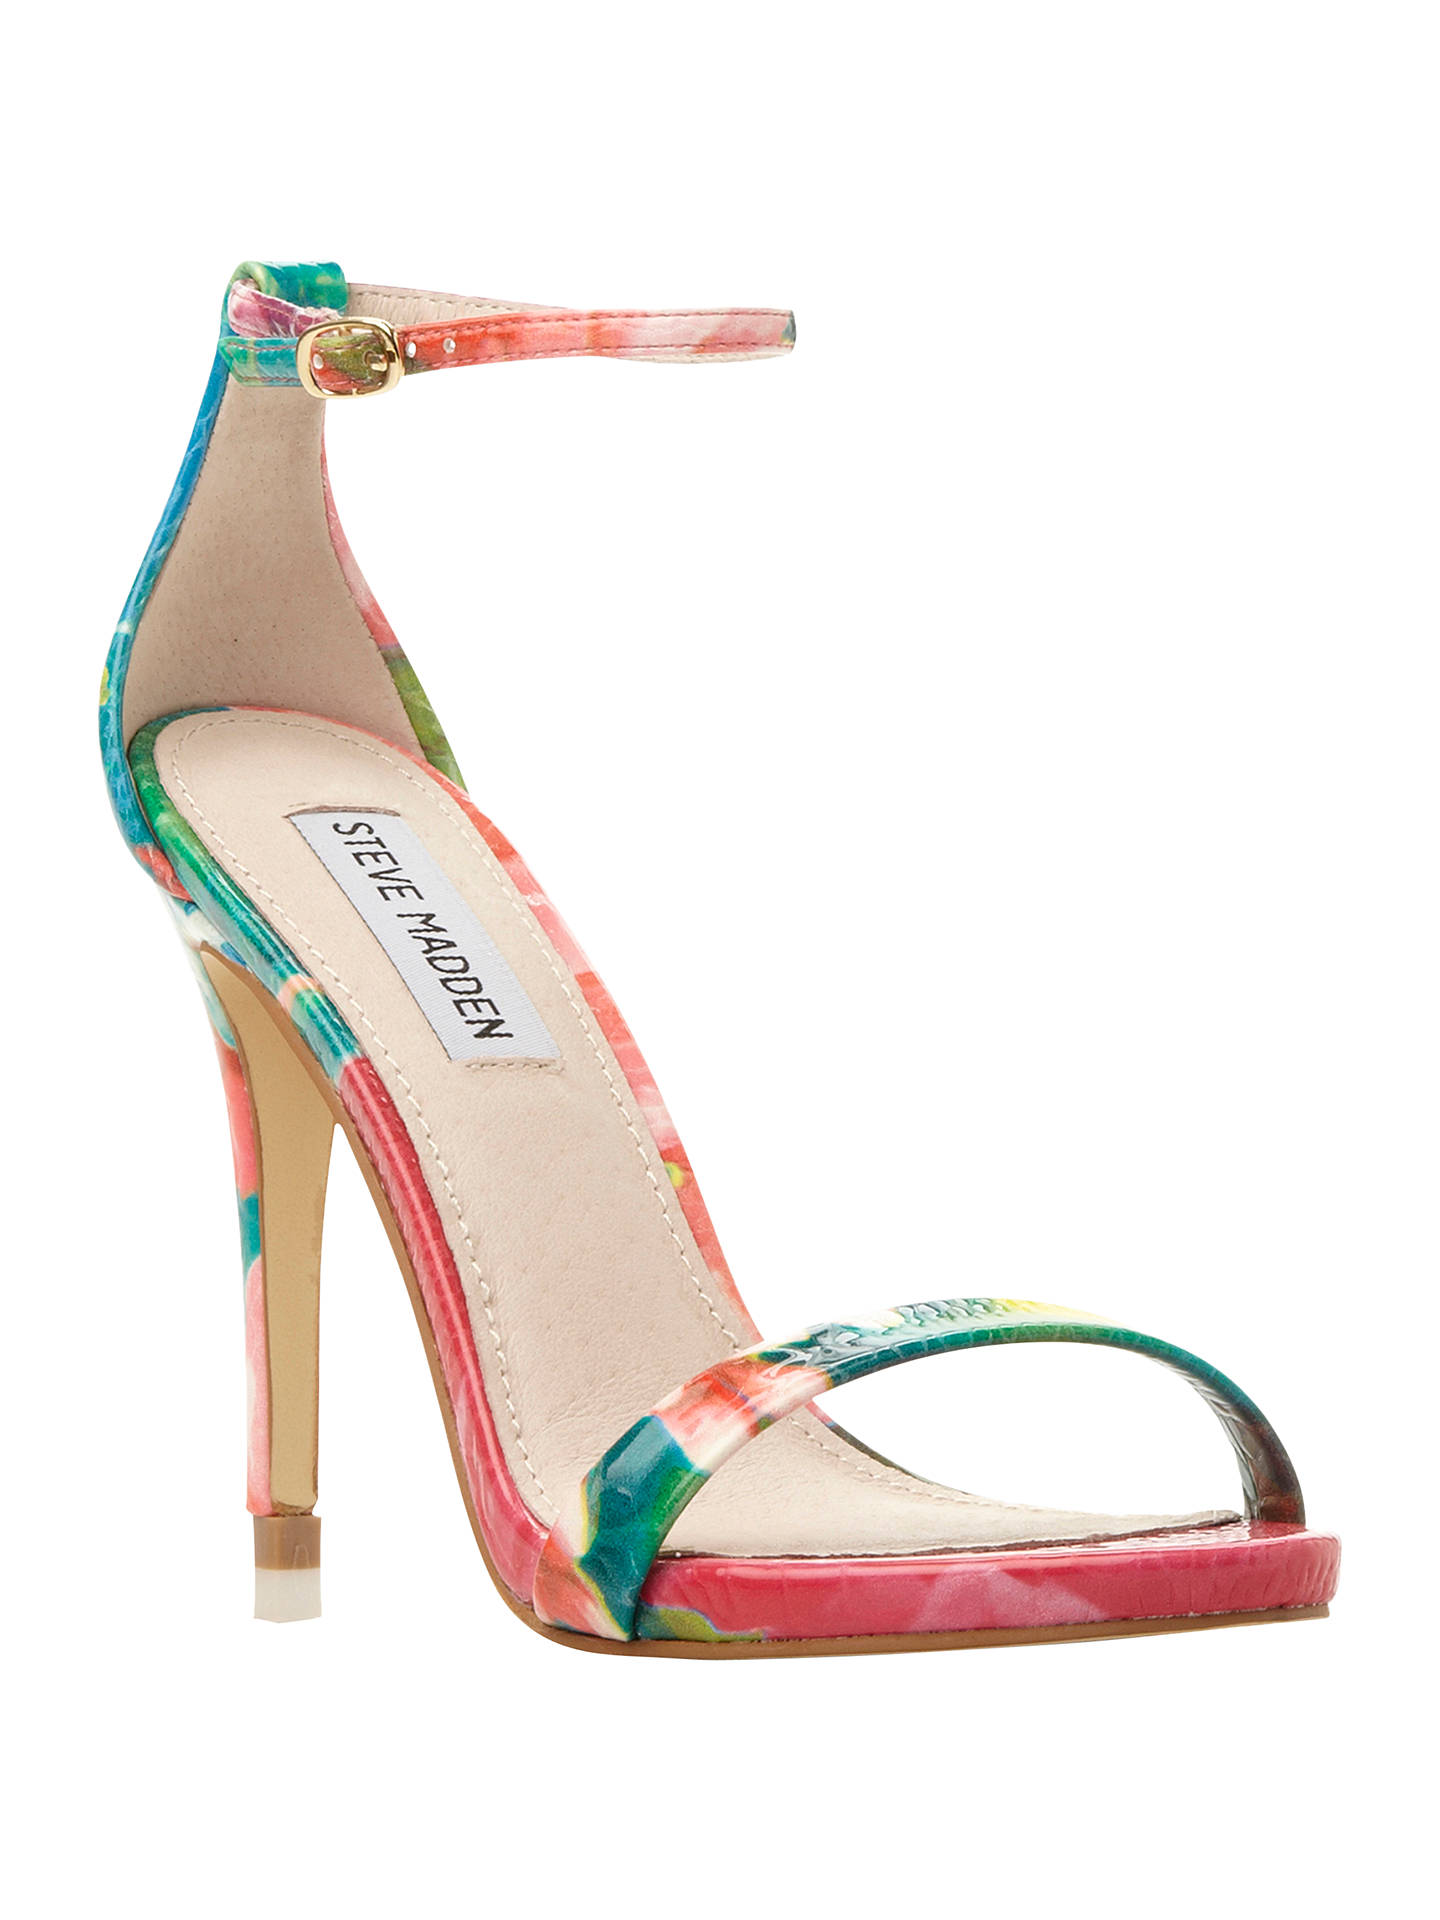 715149c4c Buy Steve Madden Stecy Barely There High Heel Sandals, Reptile, 3 Online at  johnlewis ...